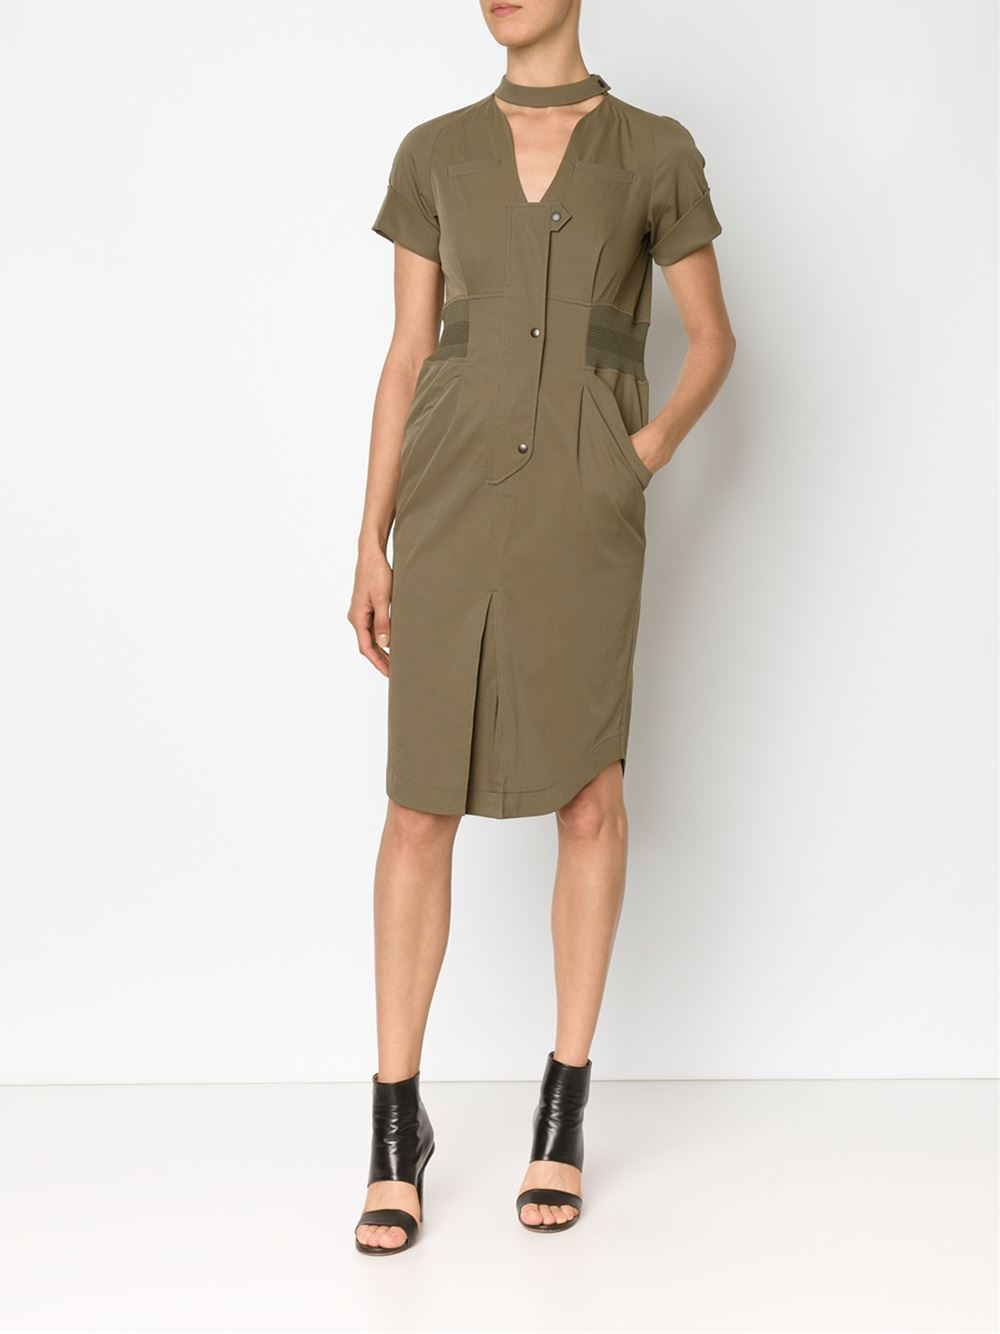 MAME  Fitted Shirt Dress $829.00